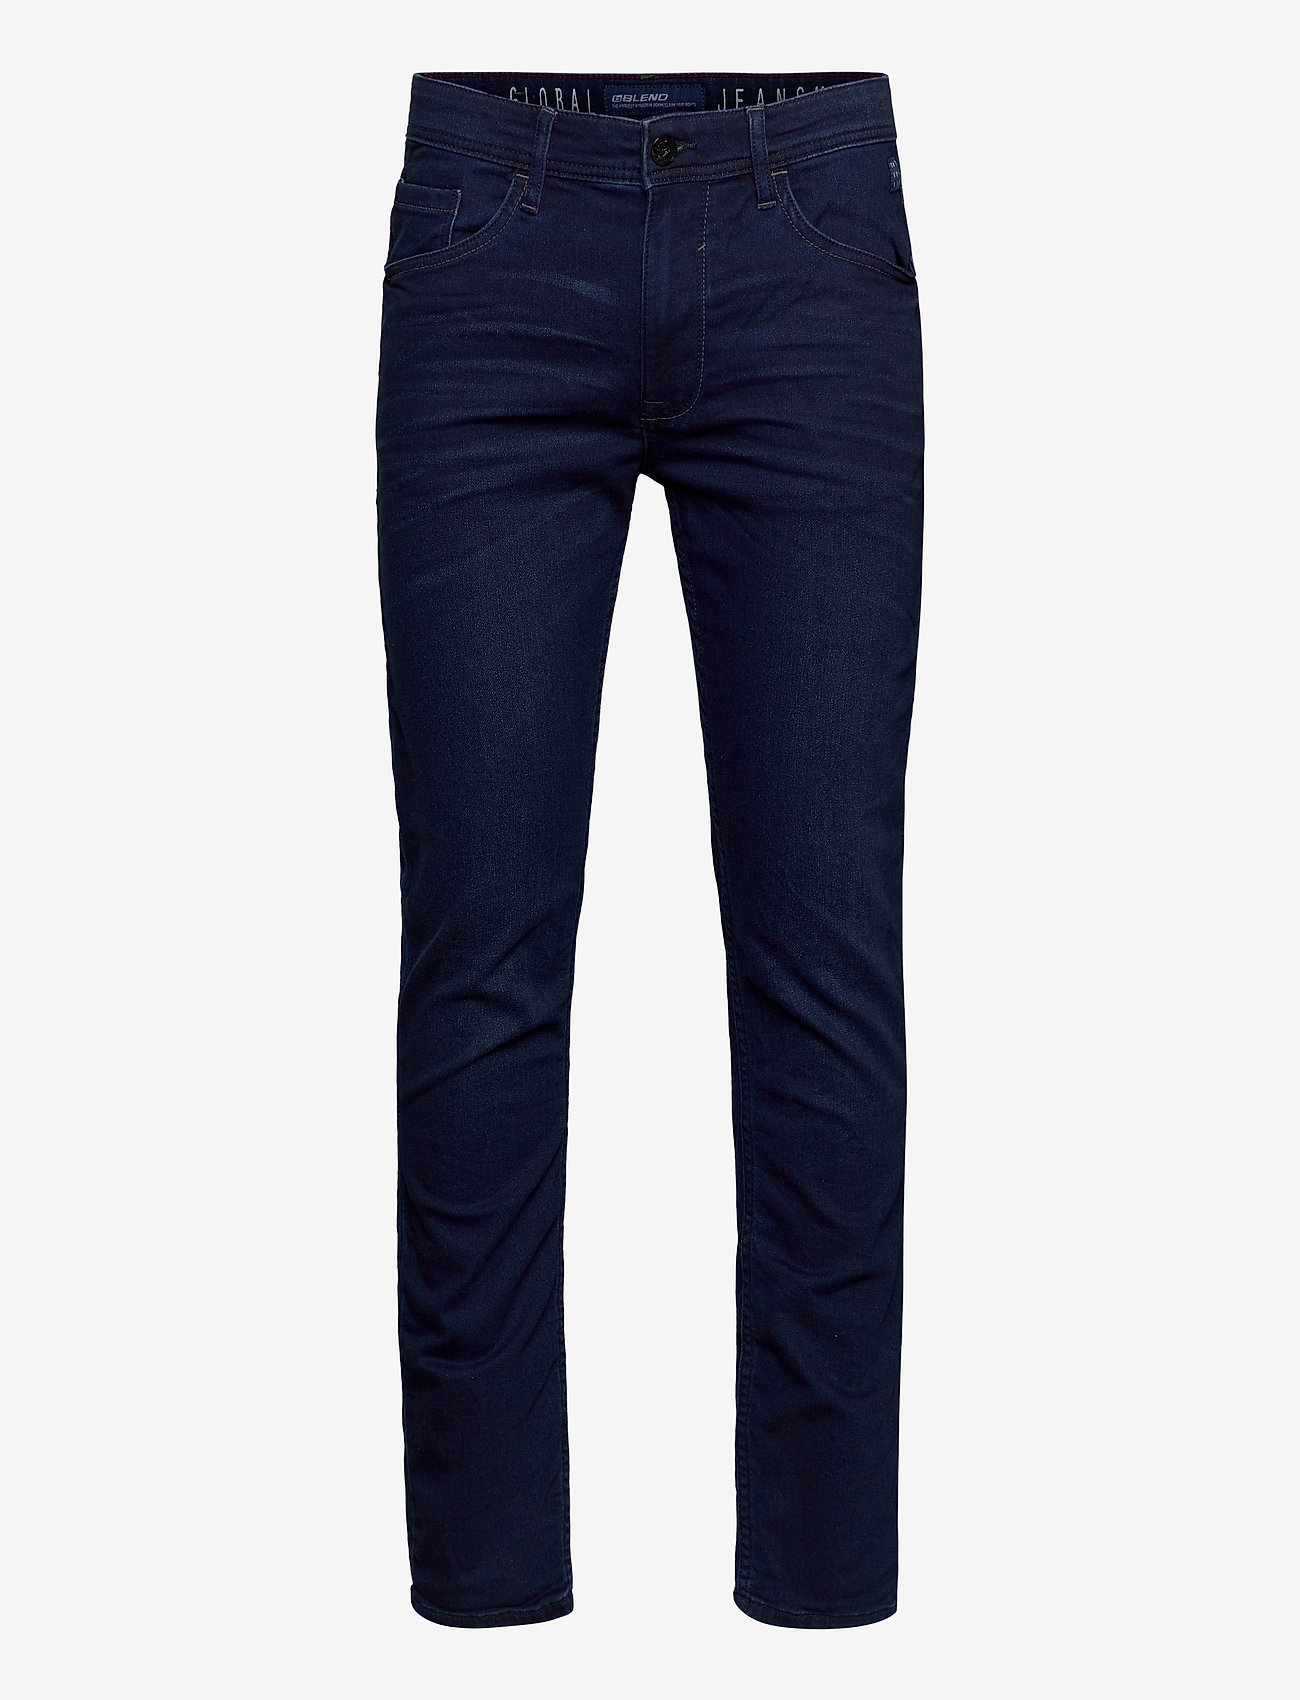 Blend - Jeans Jogg - skinny jeans - denim dark blue - 0